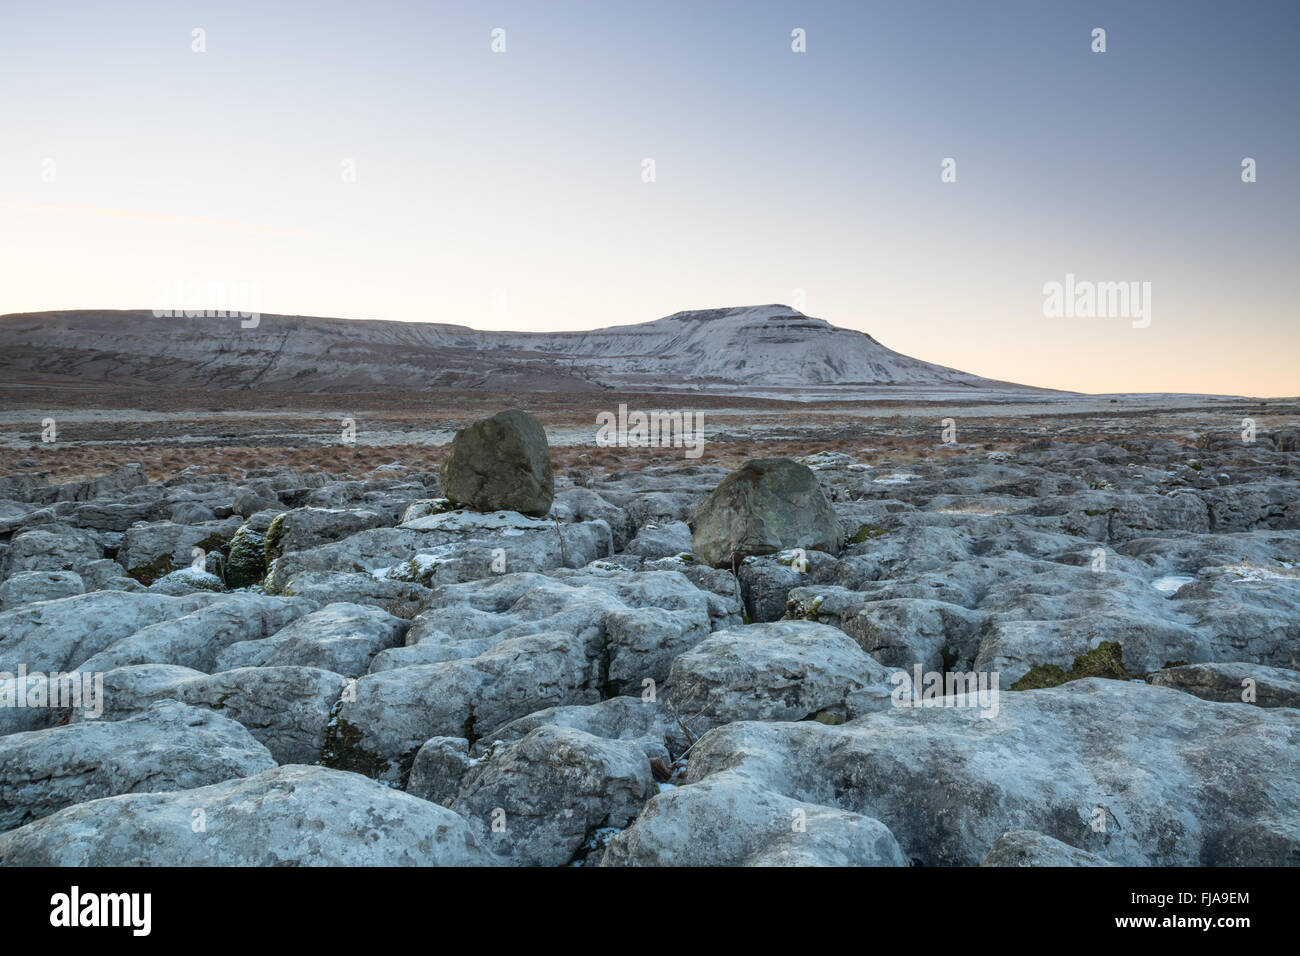 Winter at Ingleborough, one of the Yorkshire Dales three peaks - Stock Image